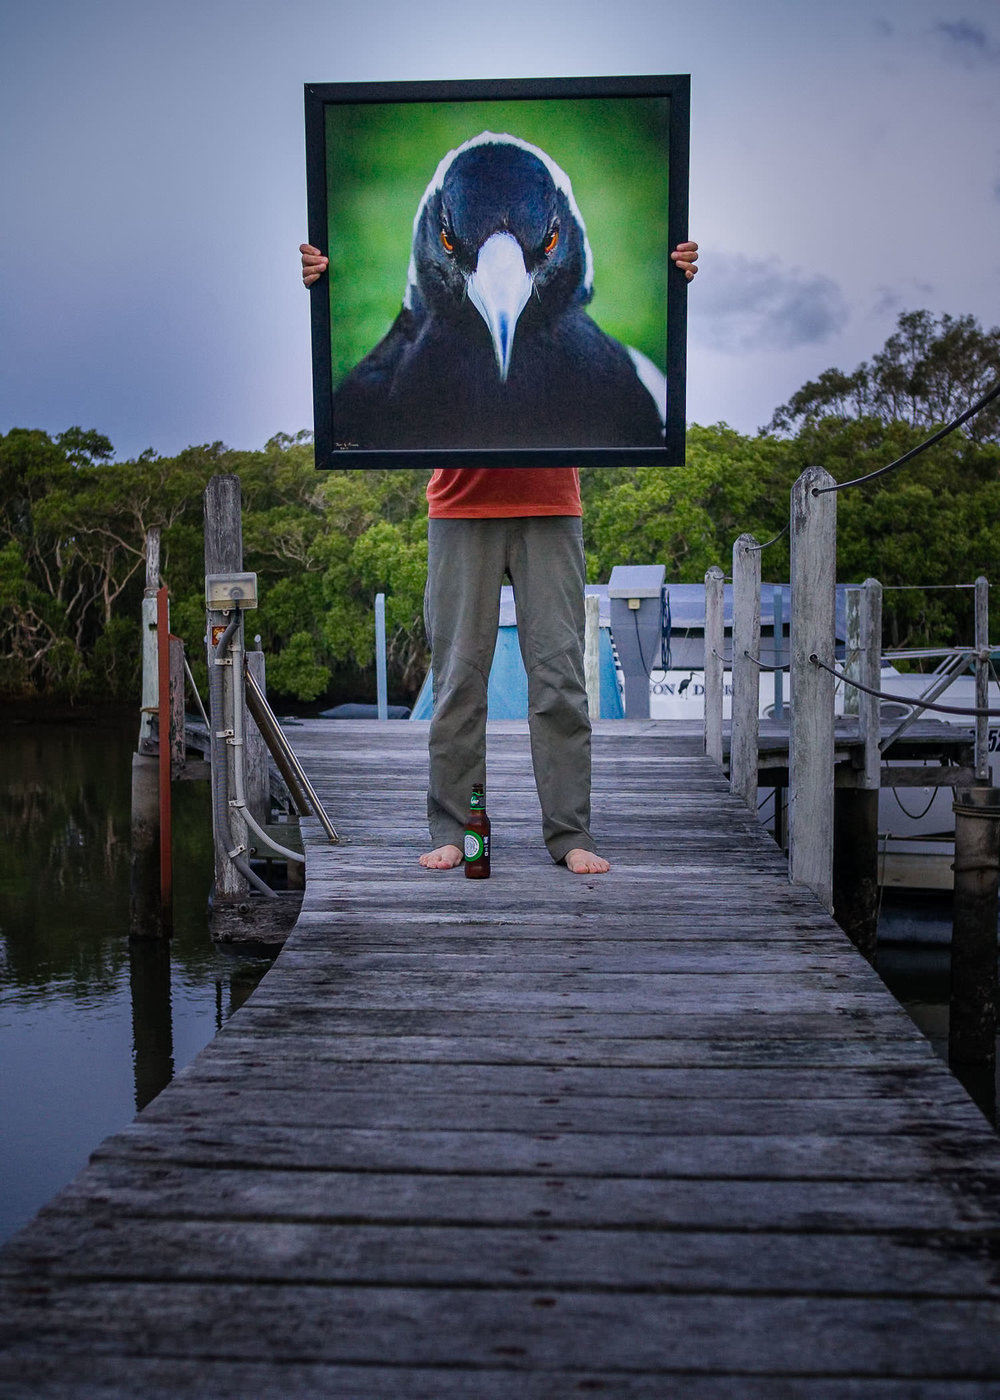 Cracticus Maximus: in a frame within a frame, Cabbage Tree Creek, dusk.